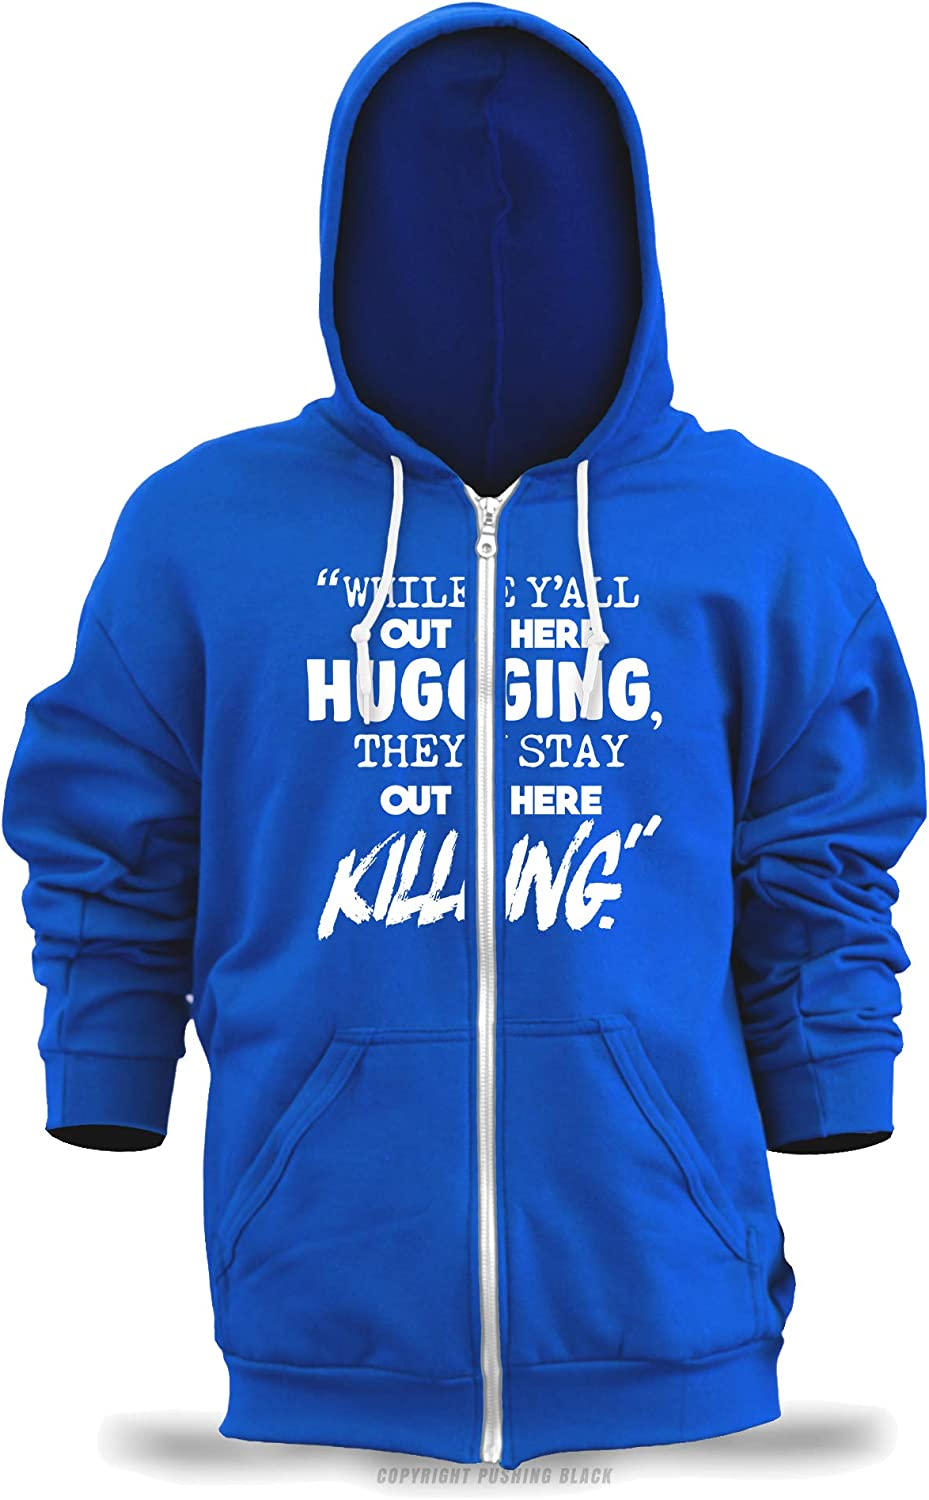 PUSHING BLACK While Yall Out Here Hugging They Out Here Killing Unisex Zipper Hoodie